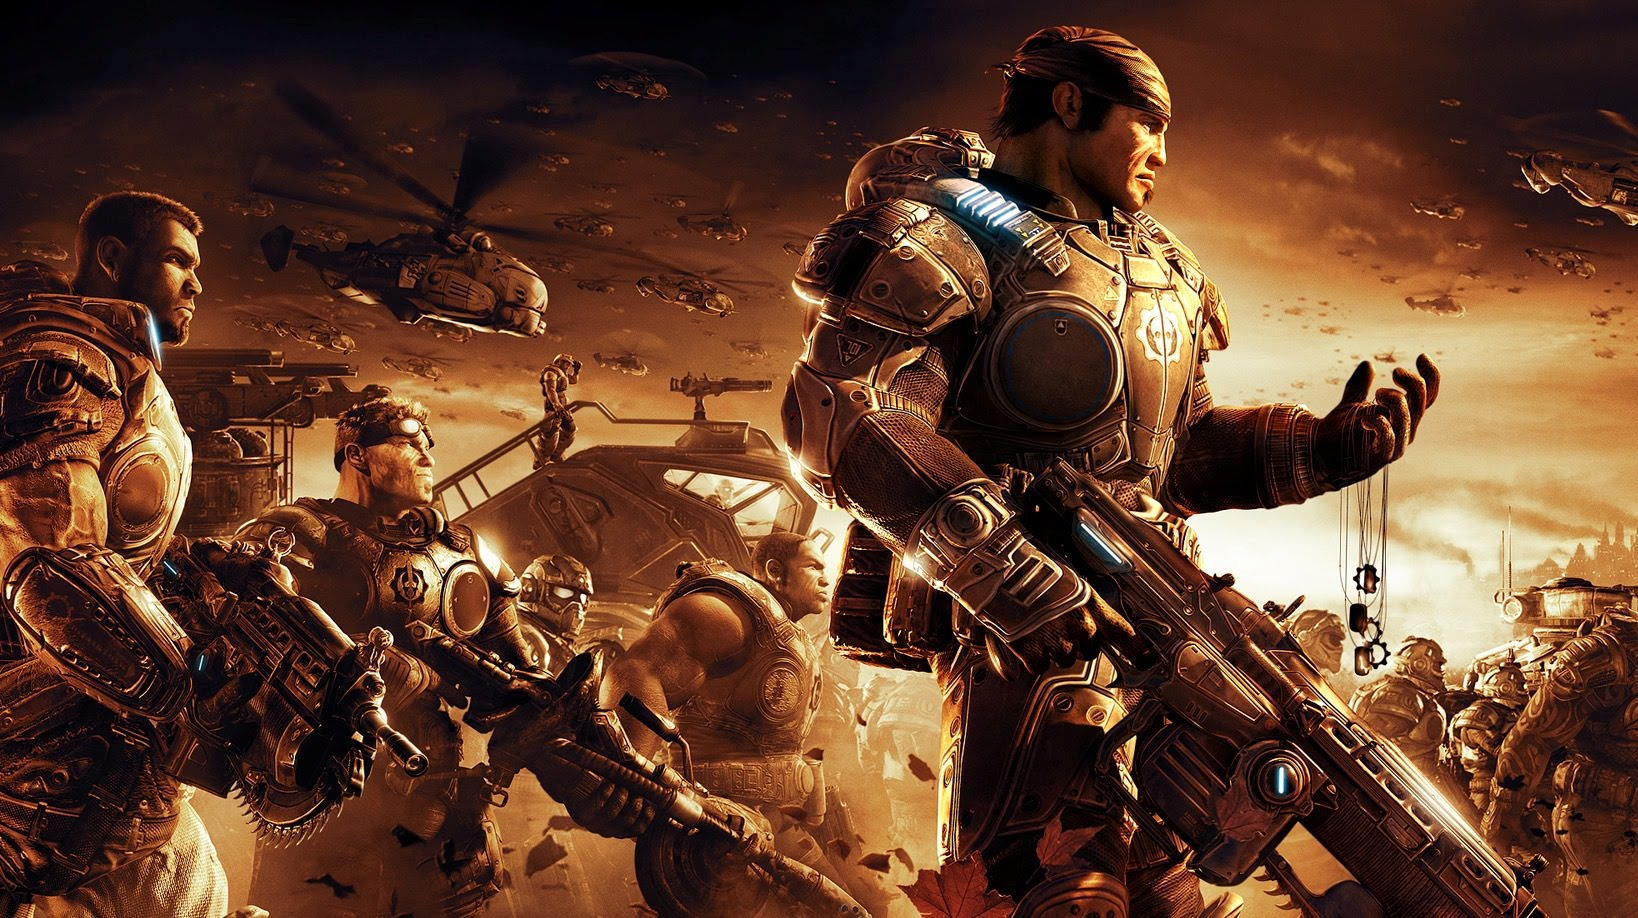 Gears of War 2 is getting Xbox One X enhancements, and all